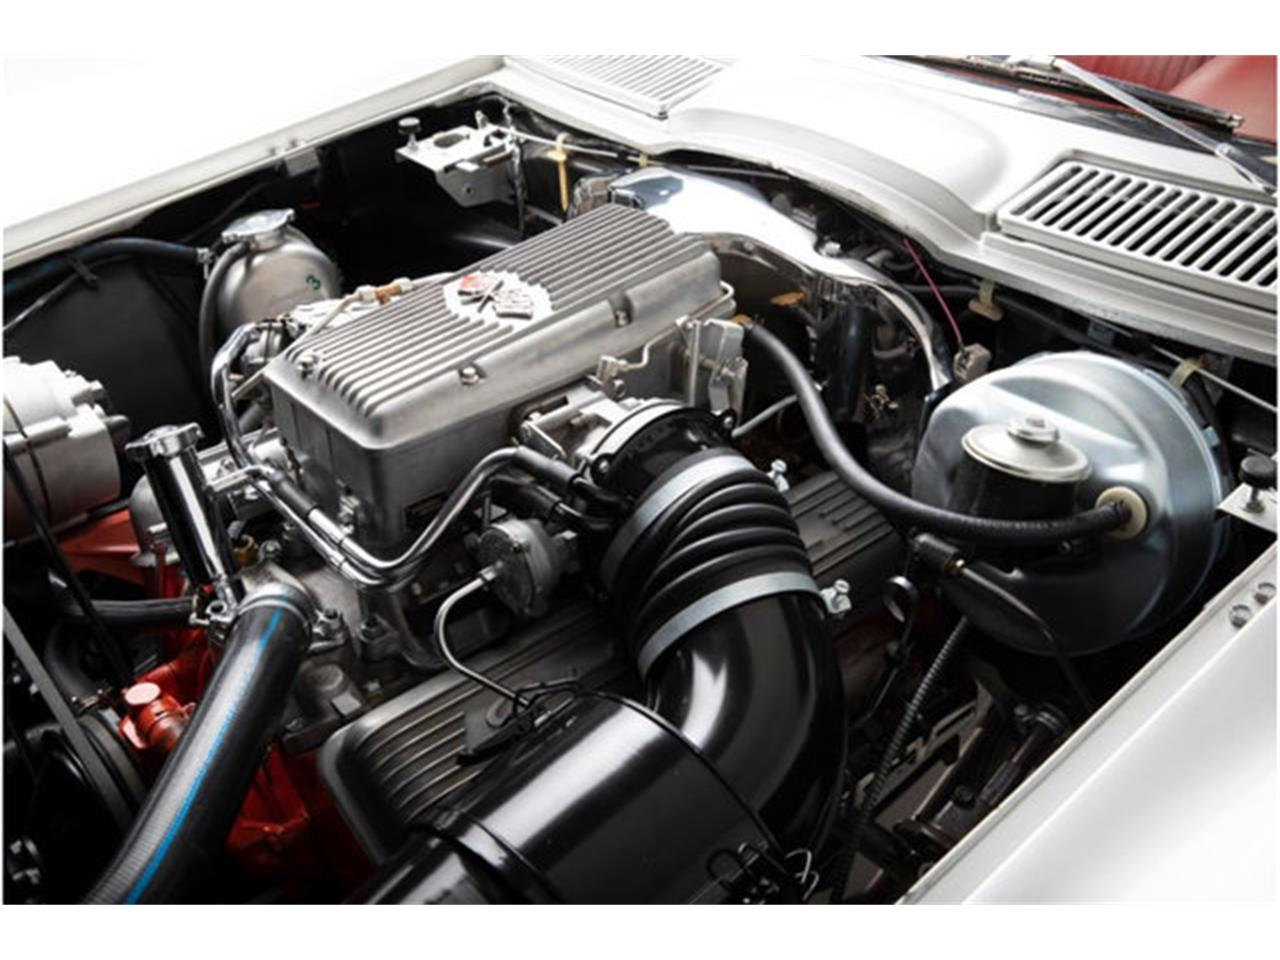 Large Picture of Classic '63 Chevrolet Corvette located in Clifton Park New York Auction Vehicle - QOY3